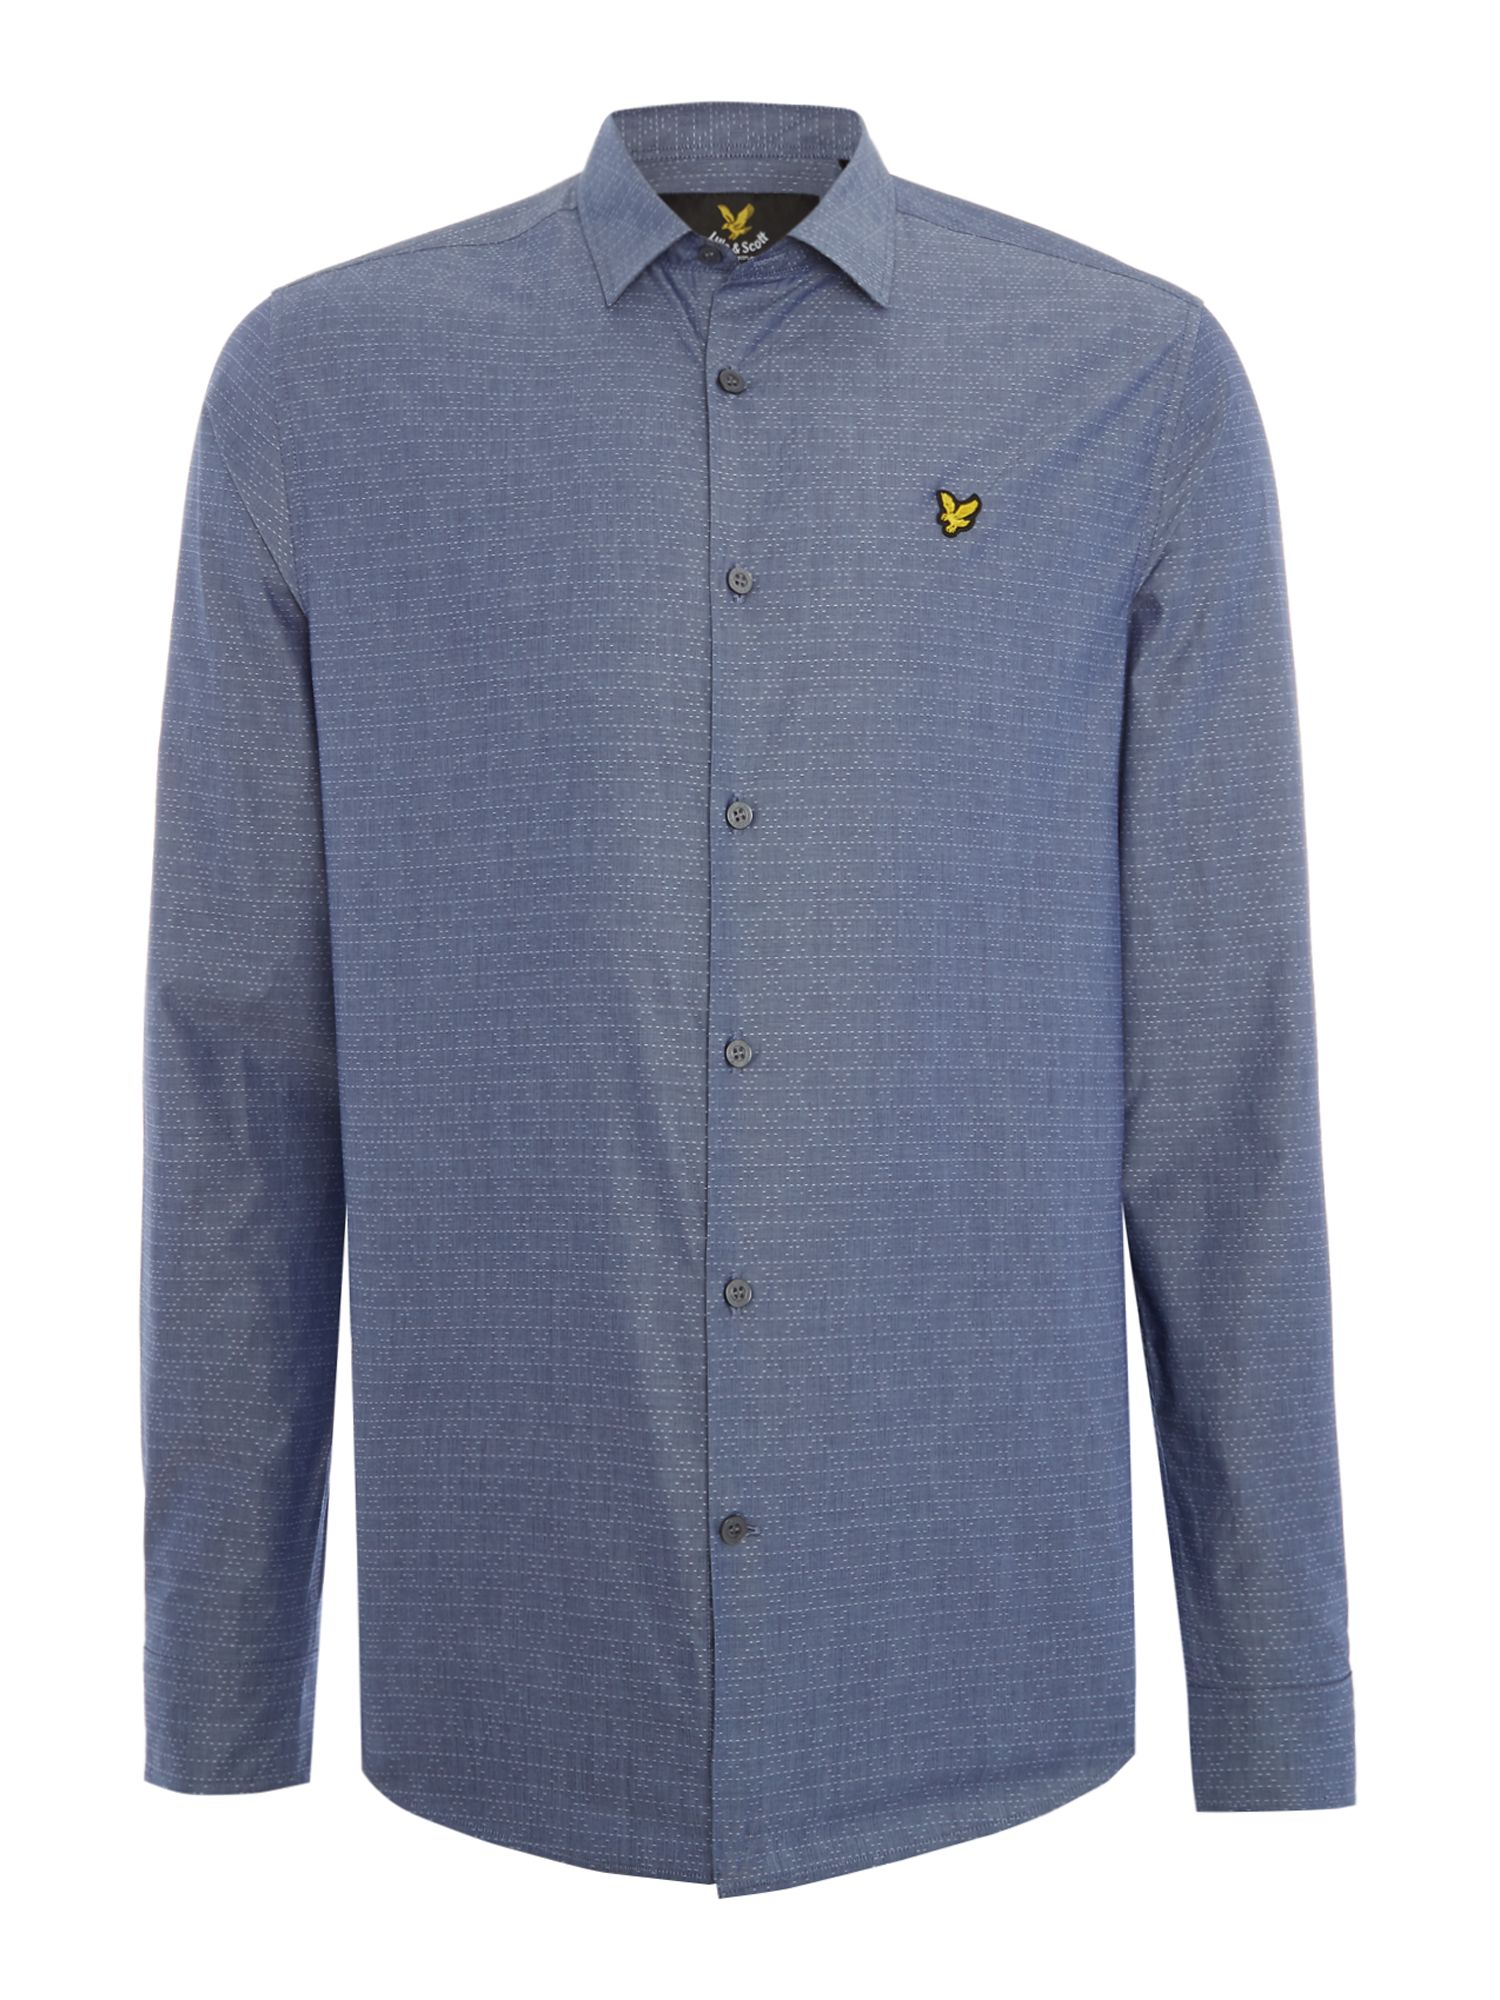 Mens Lyle and Scott Lyle & Scott Long Sleeve Diagonal Stitch Shirt Navy